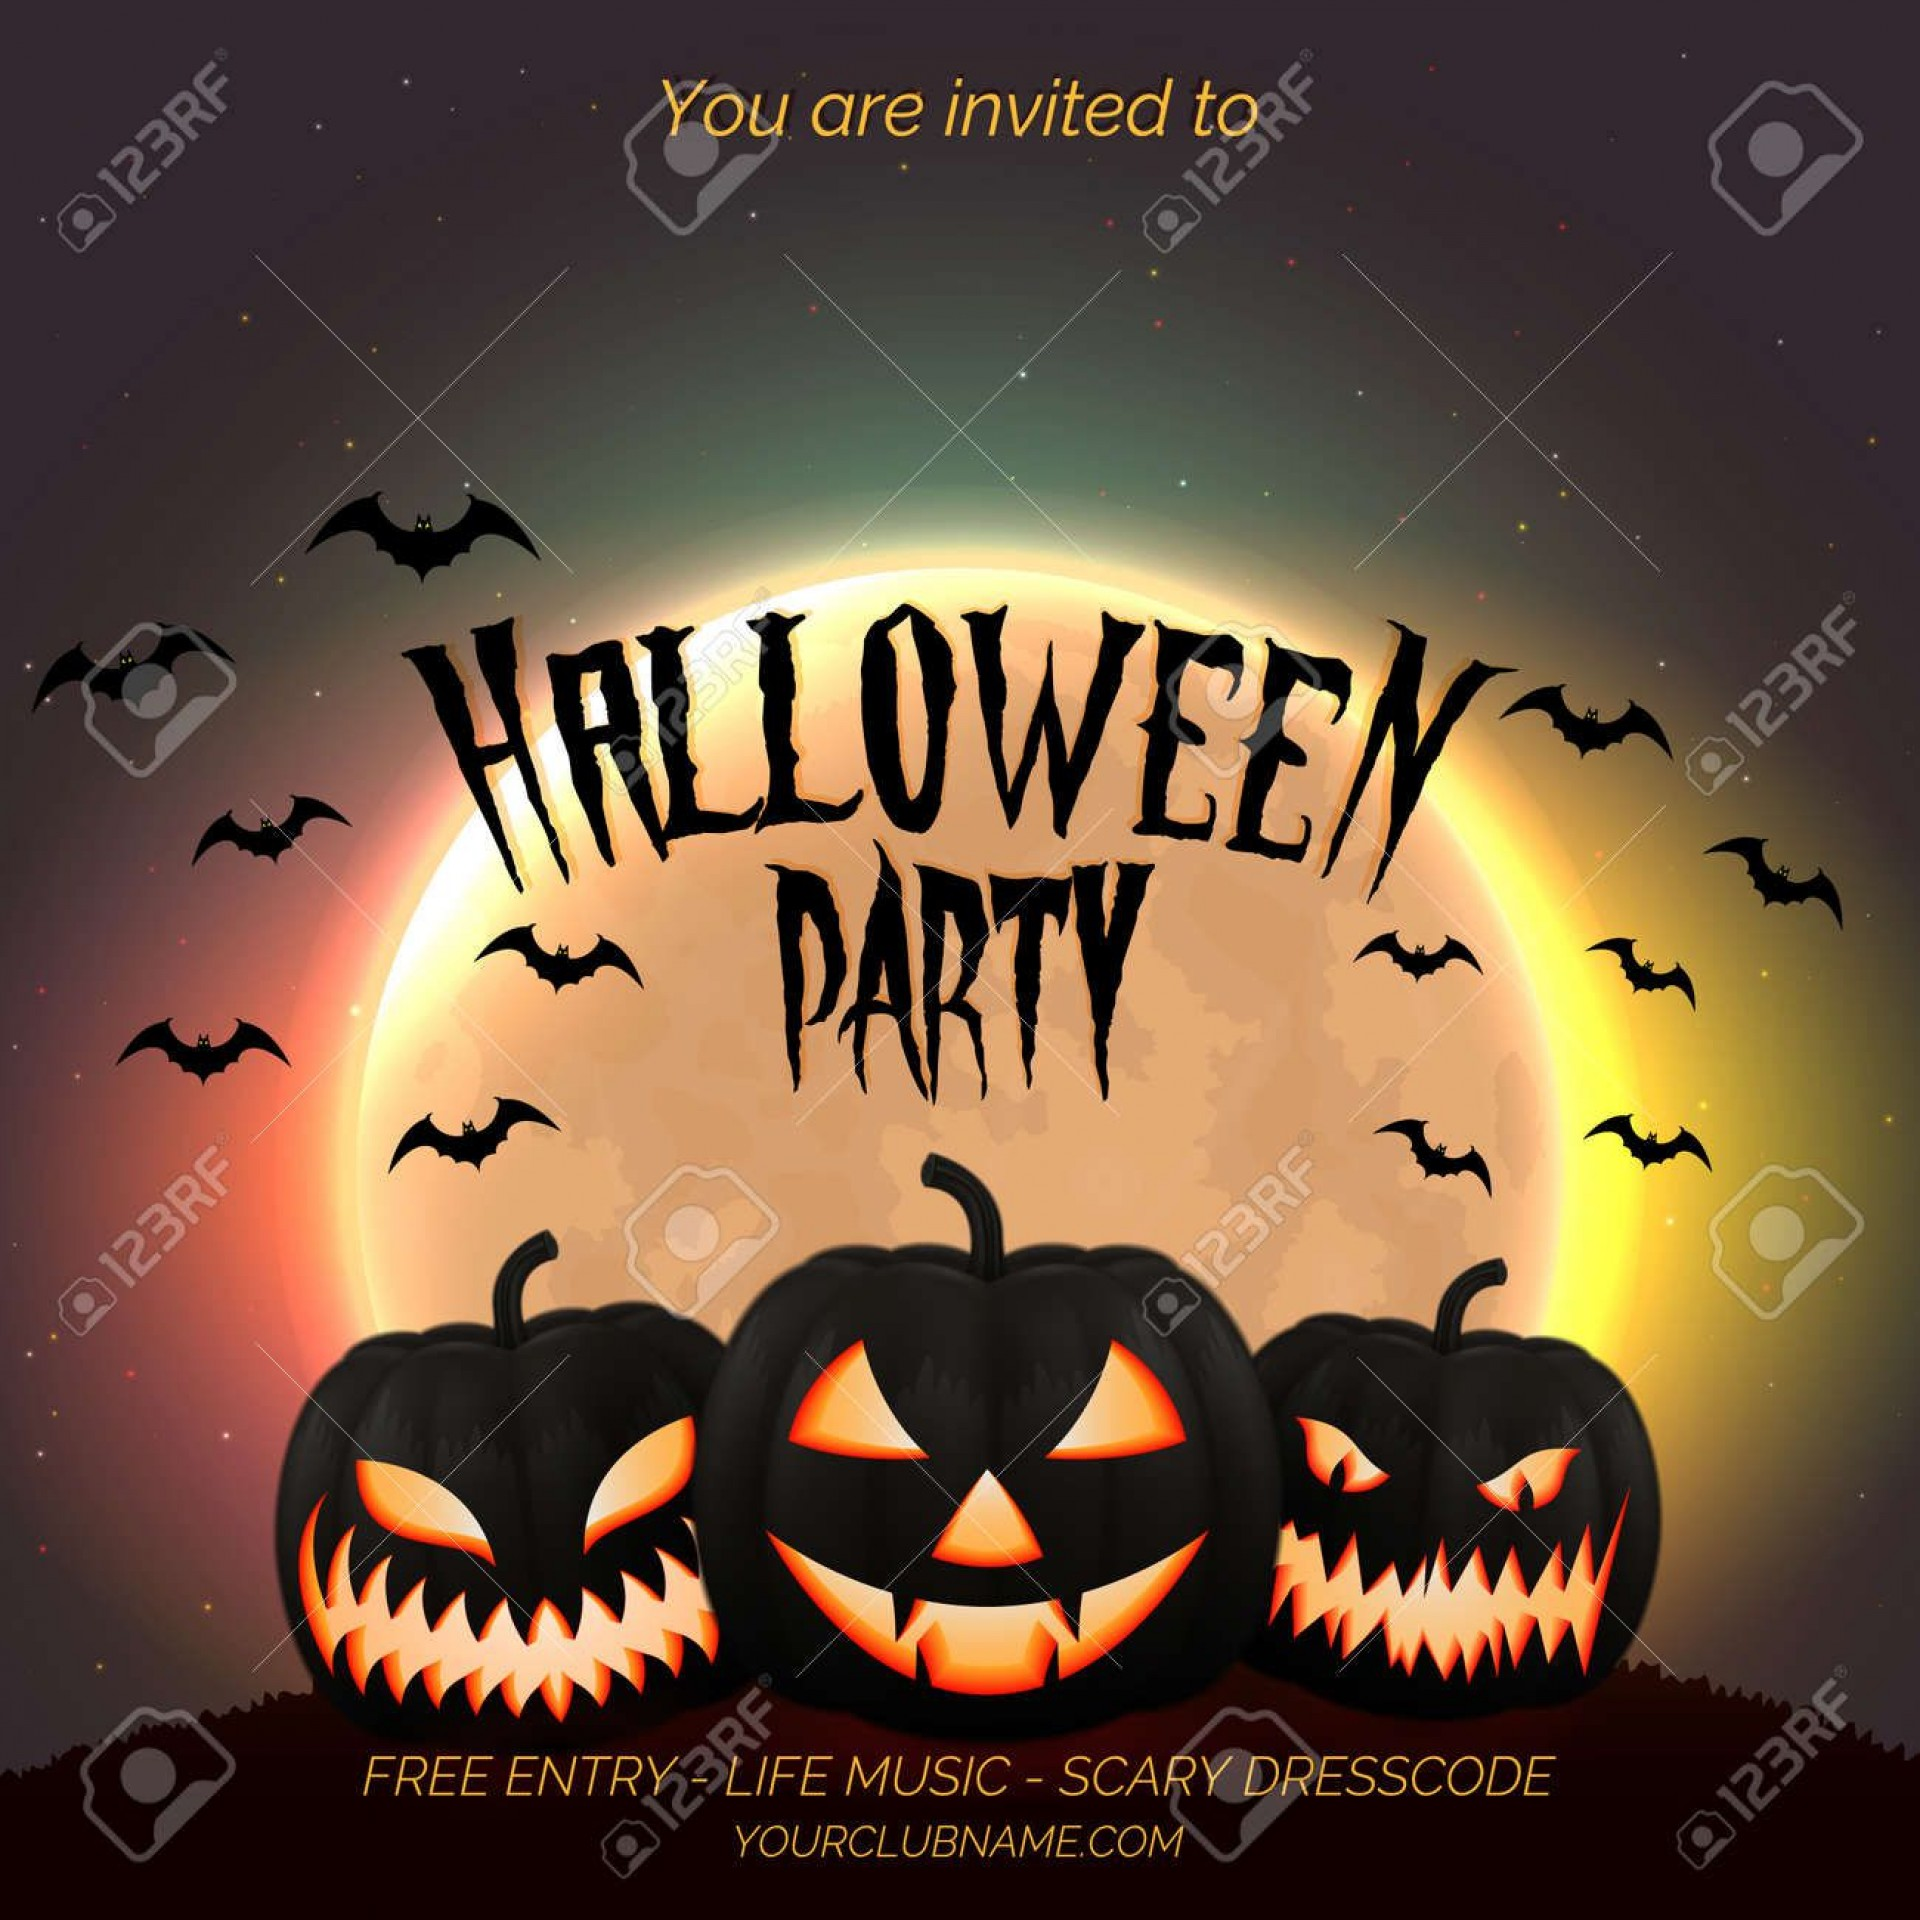 003 Staggering Free Halloween Party Flyer Template Highest Clarity  Templates1920